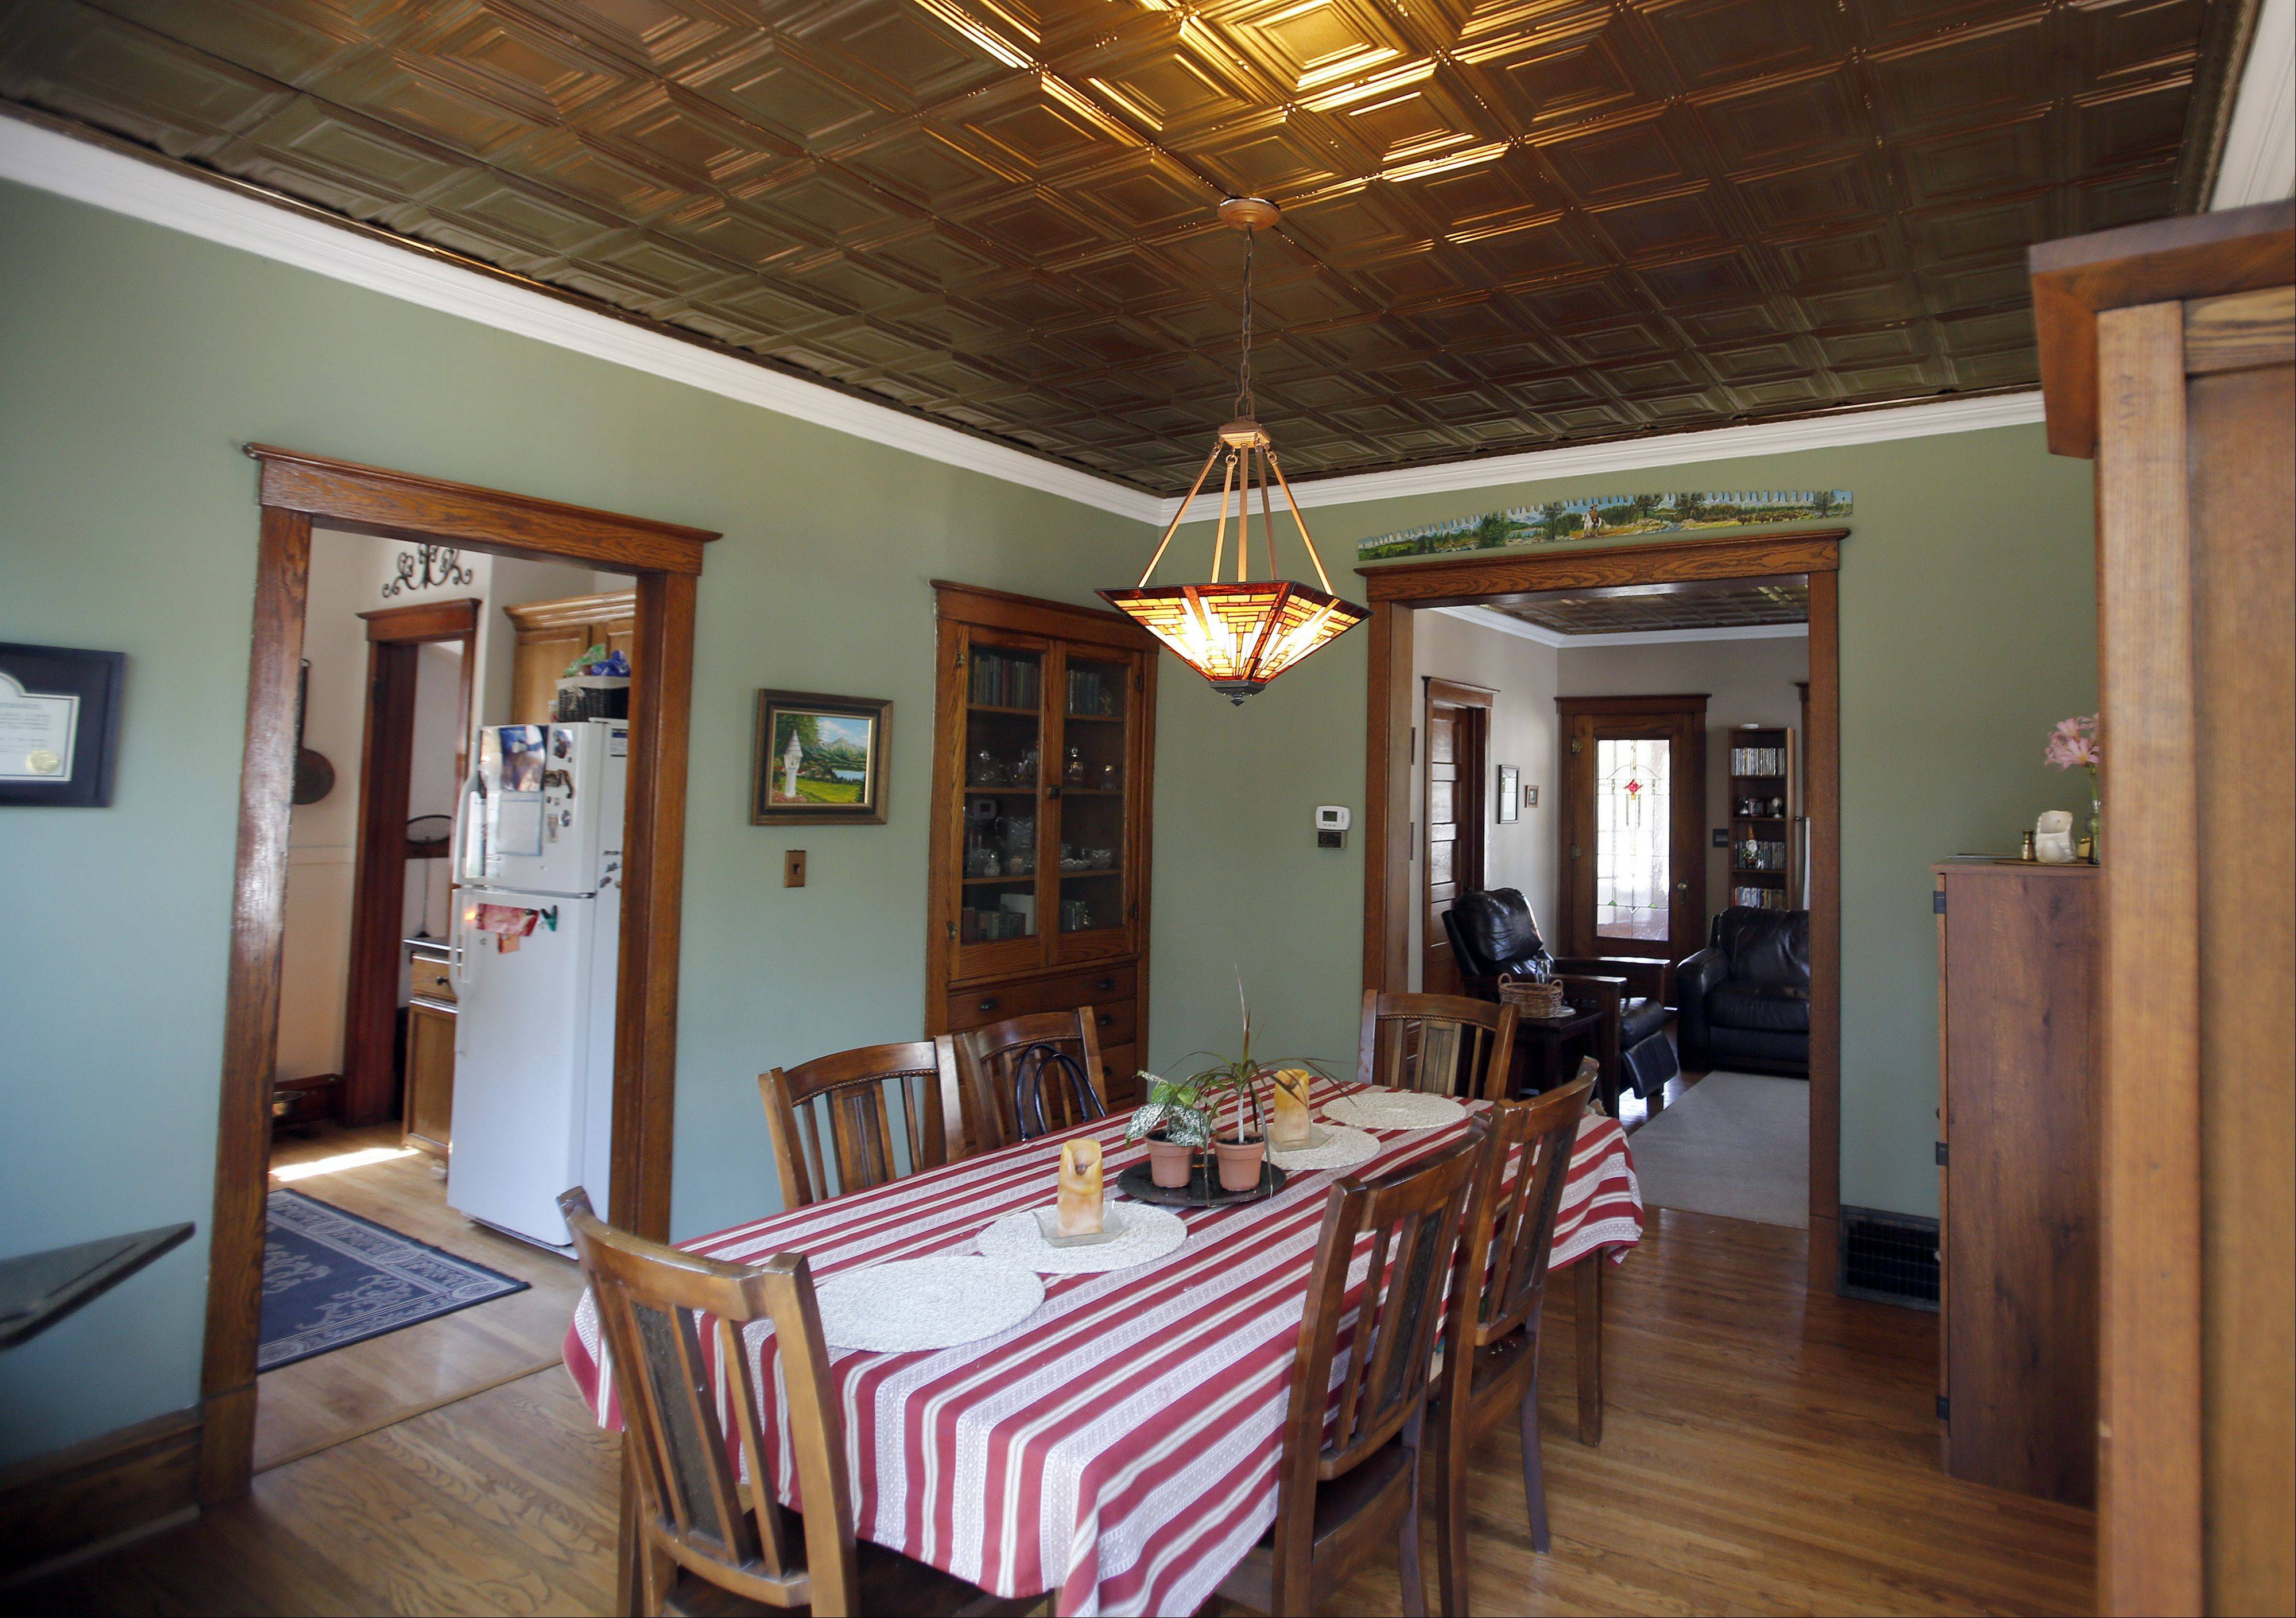 The dining room of 439 W. Chicago St., Elgin, will be one of the stops on the 32nd annual Historic Elgin House Tour. The tour will feature Elgin's near west side.